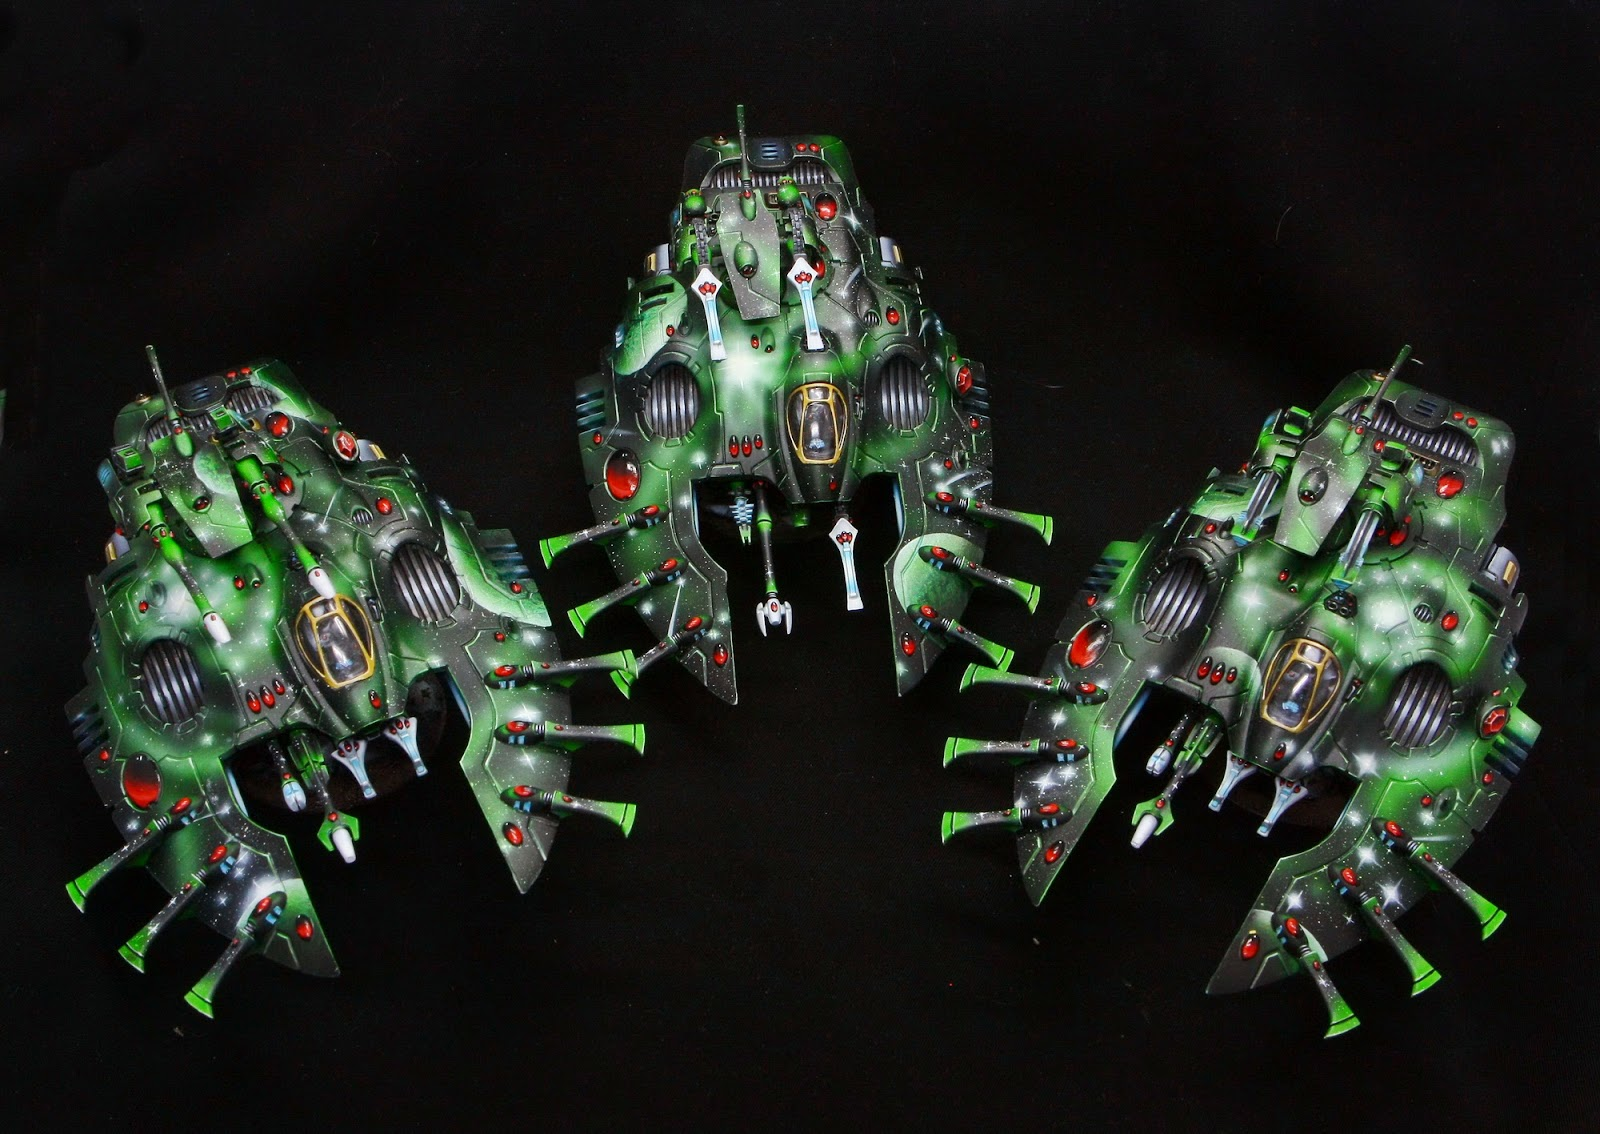 http://z3r-river-eng.blogspot.ru/2014/03/space-eldar-army-wave-serpents.html